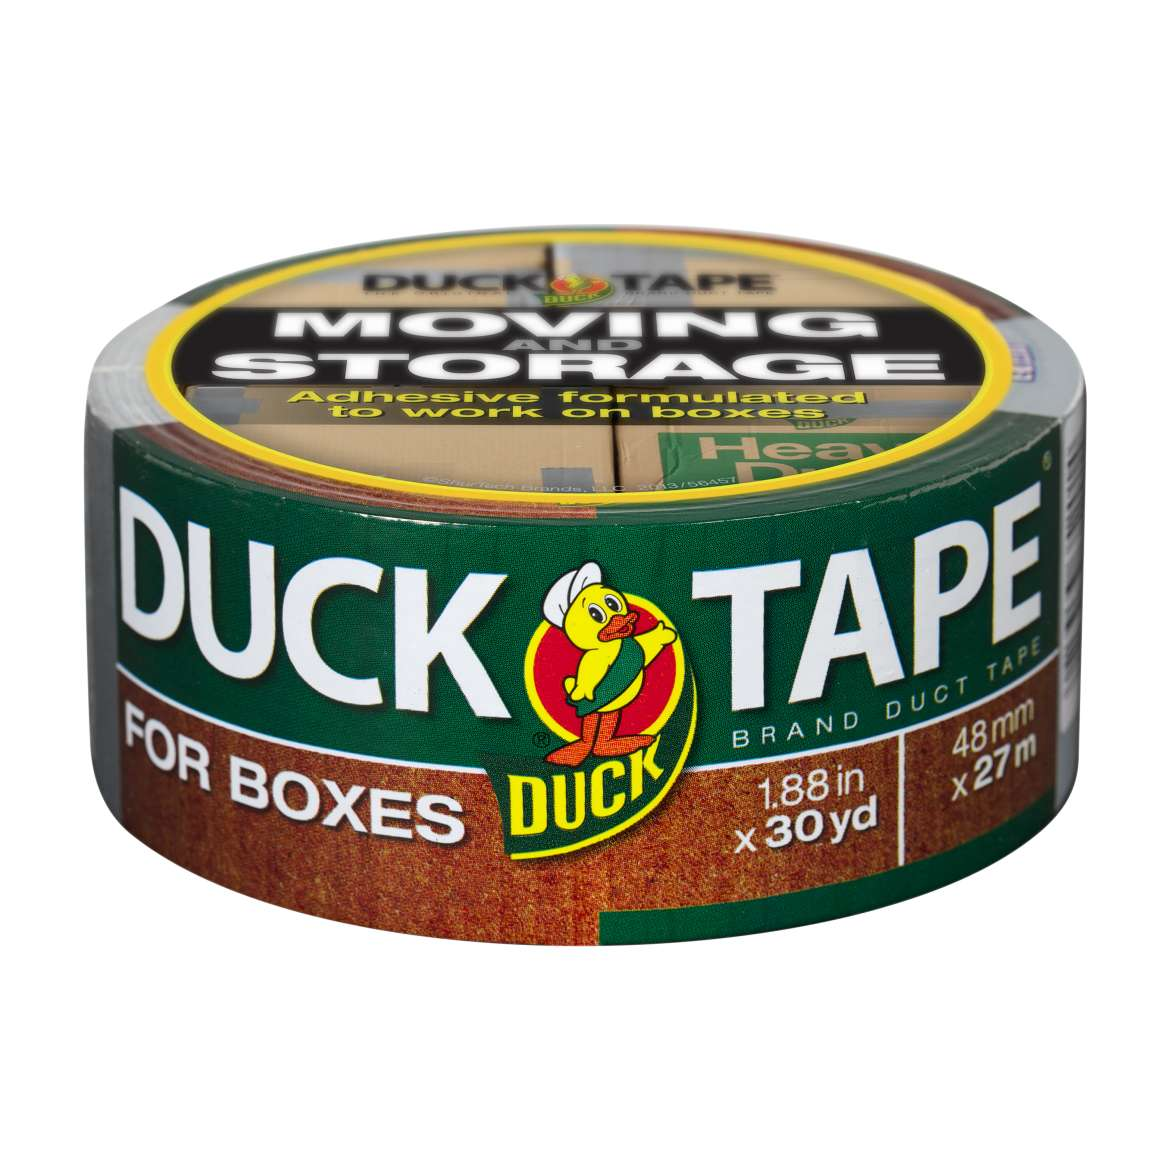 Duck Tape® Brand Duct Tape For Boxes - Silver, 1.88 in. x 30 yd. Image